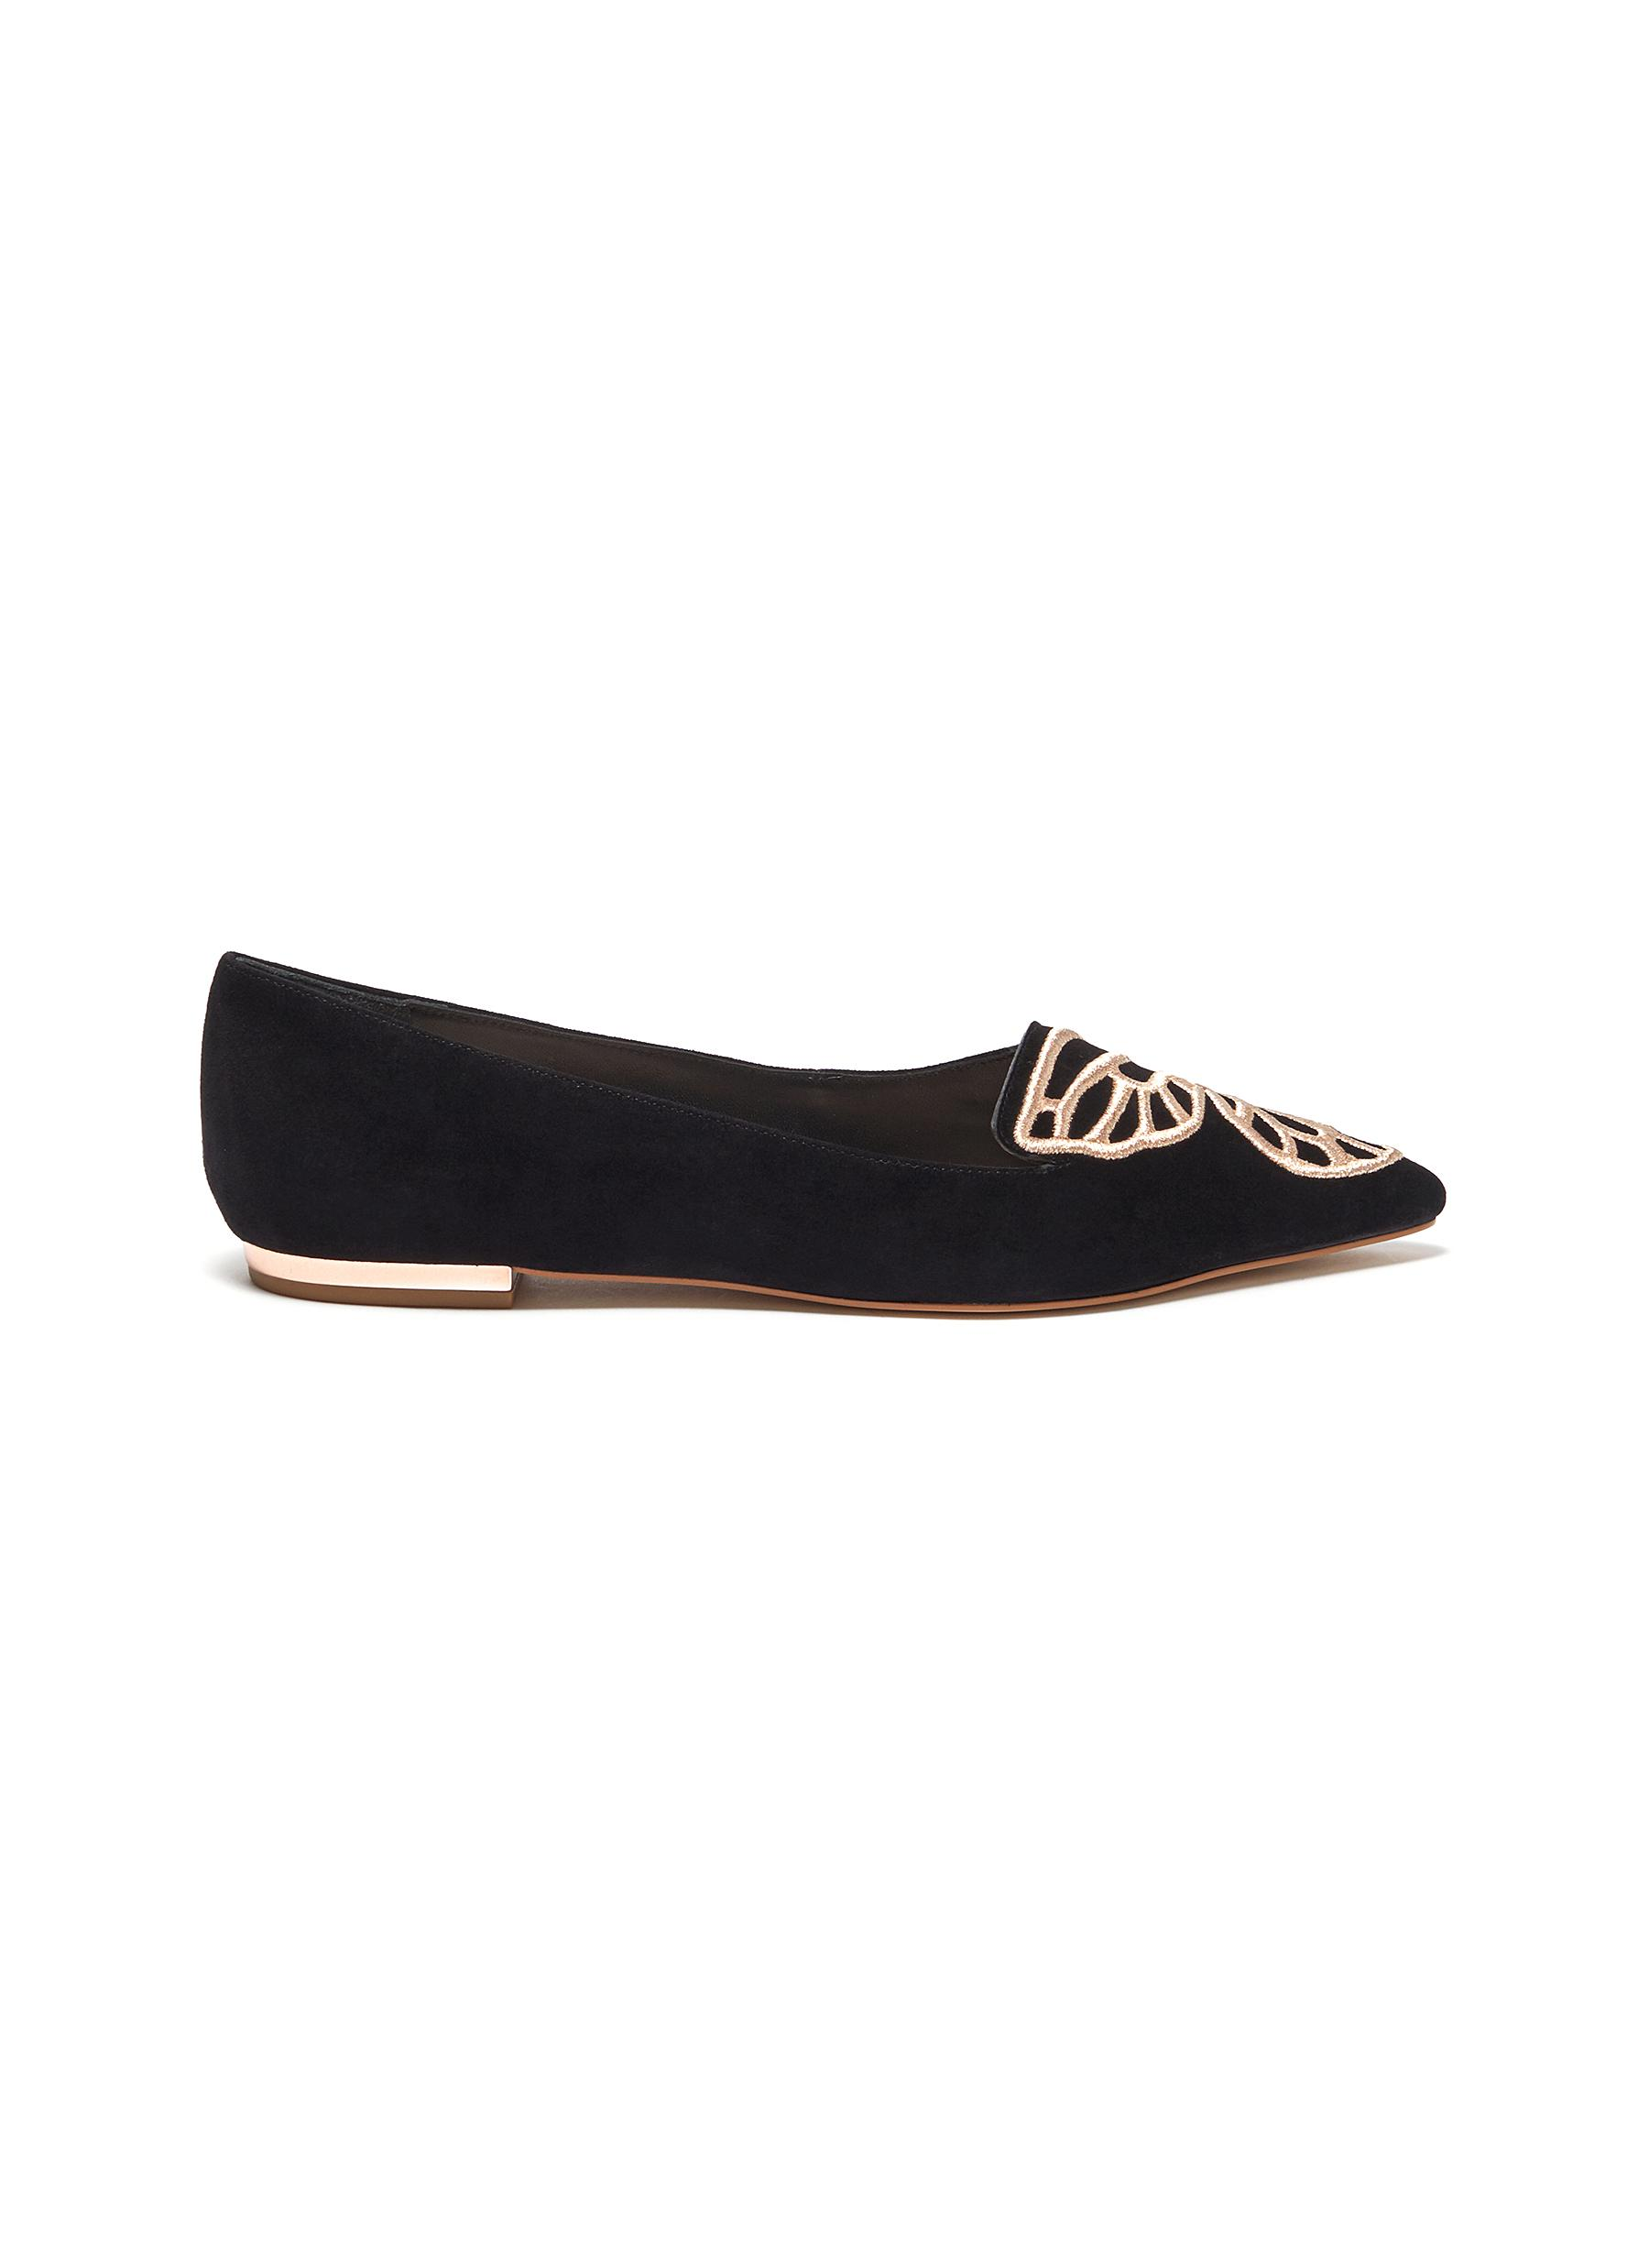 Sophia Webster Flats Bibi Butterfly wing embroidered suede flats